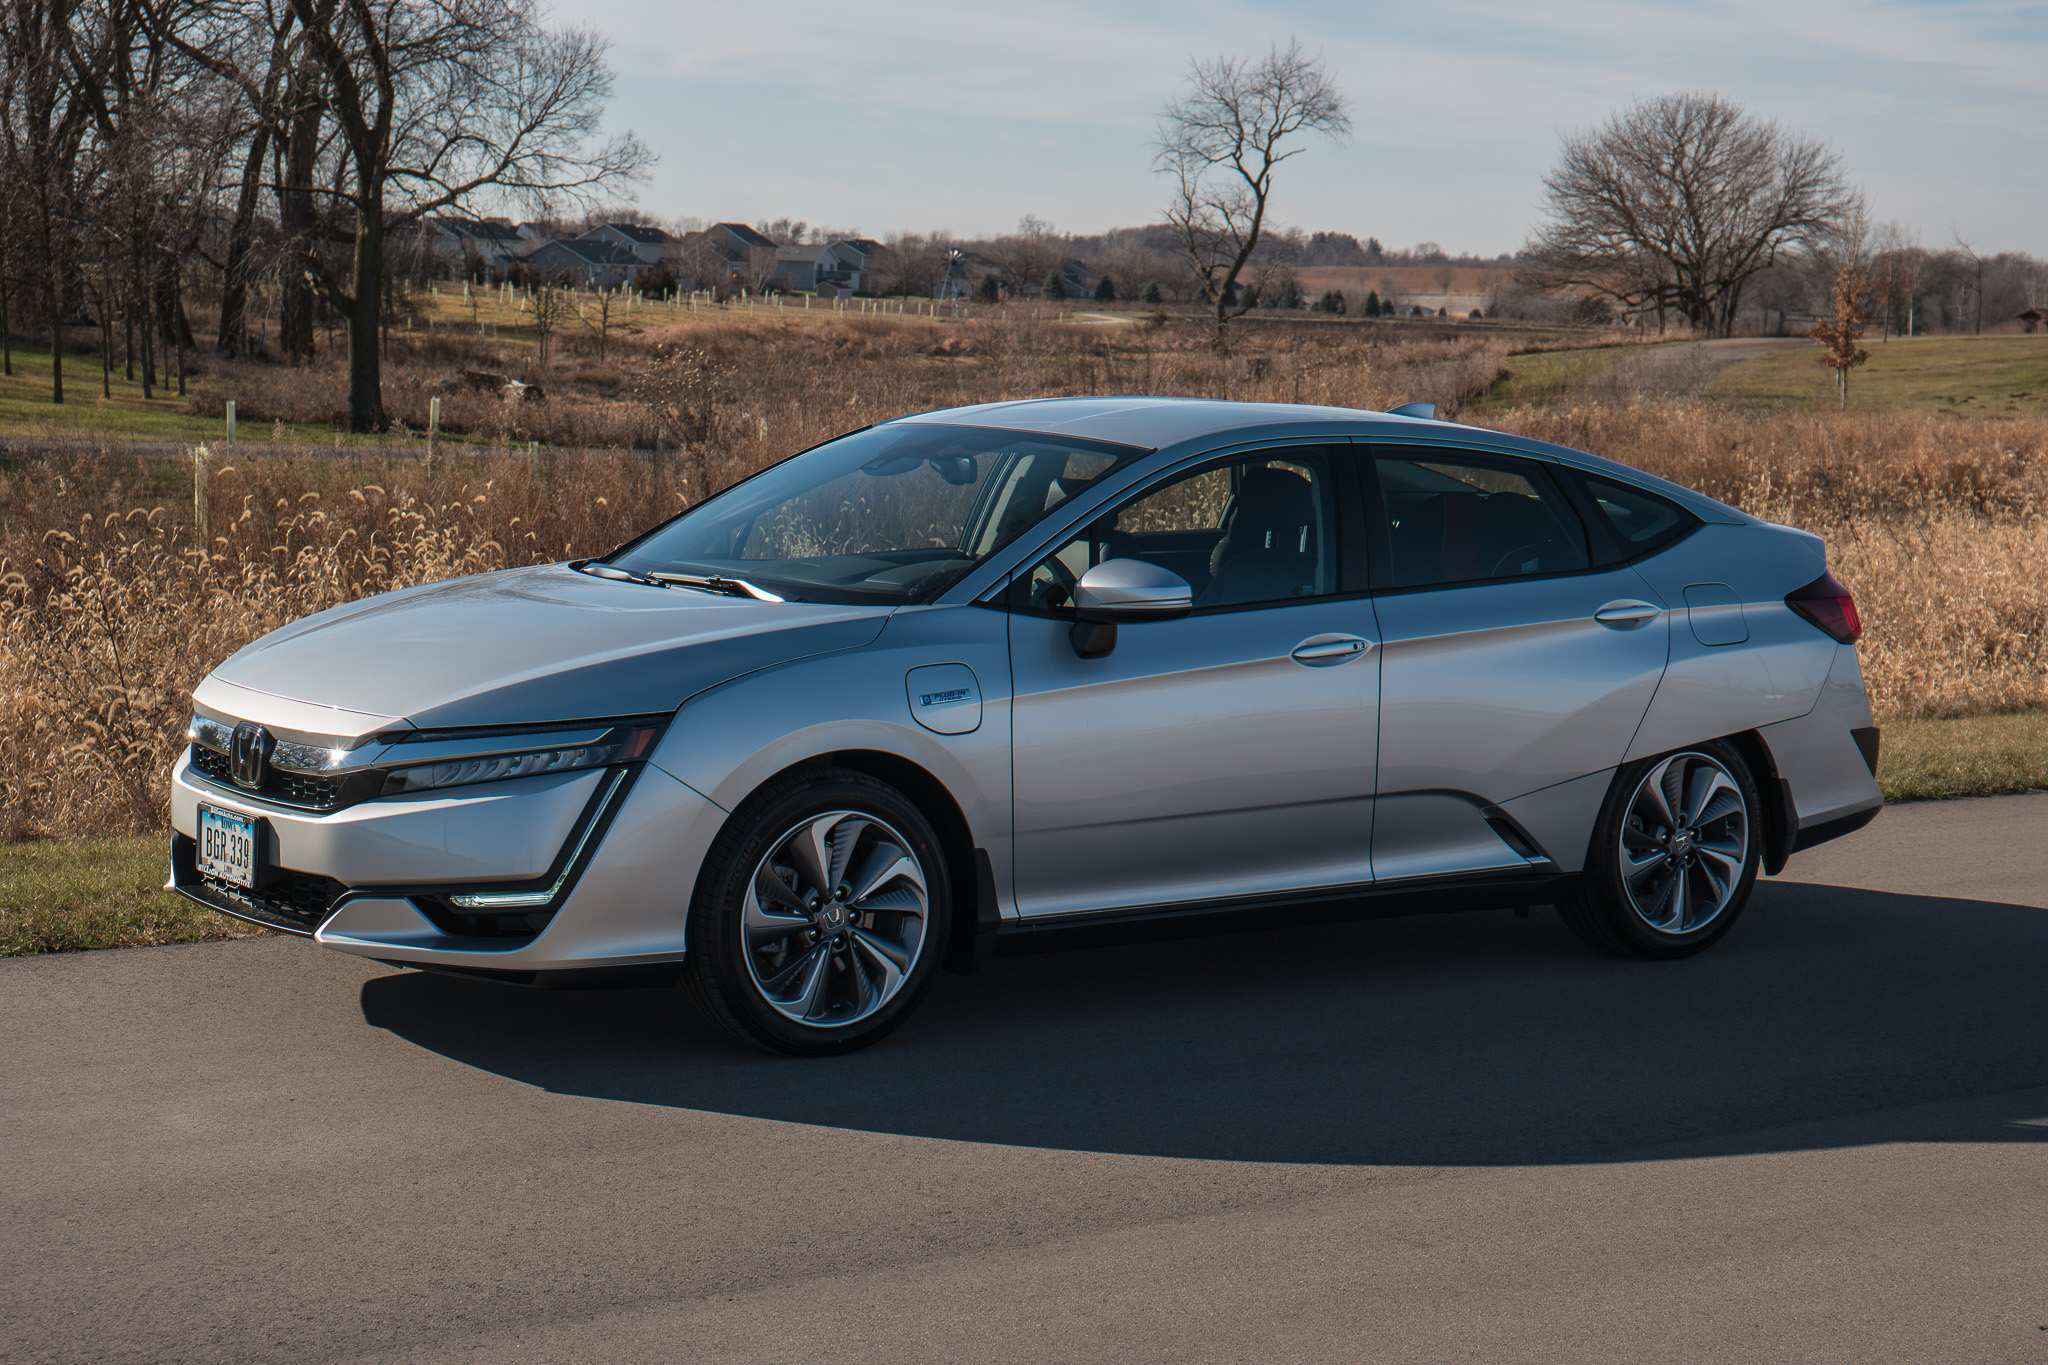 39 Best Review 2020 Honda Clarity Plug In Hybrid First Drive for 2020 Honda Clarity Plug In Hybrid